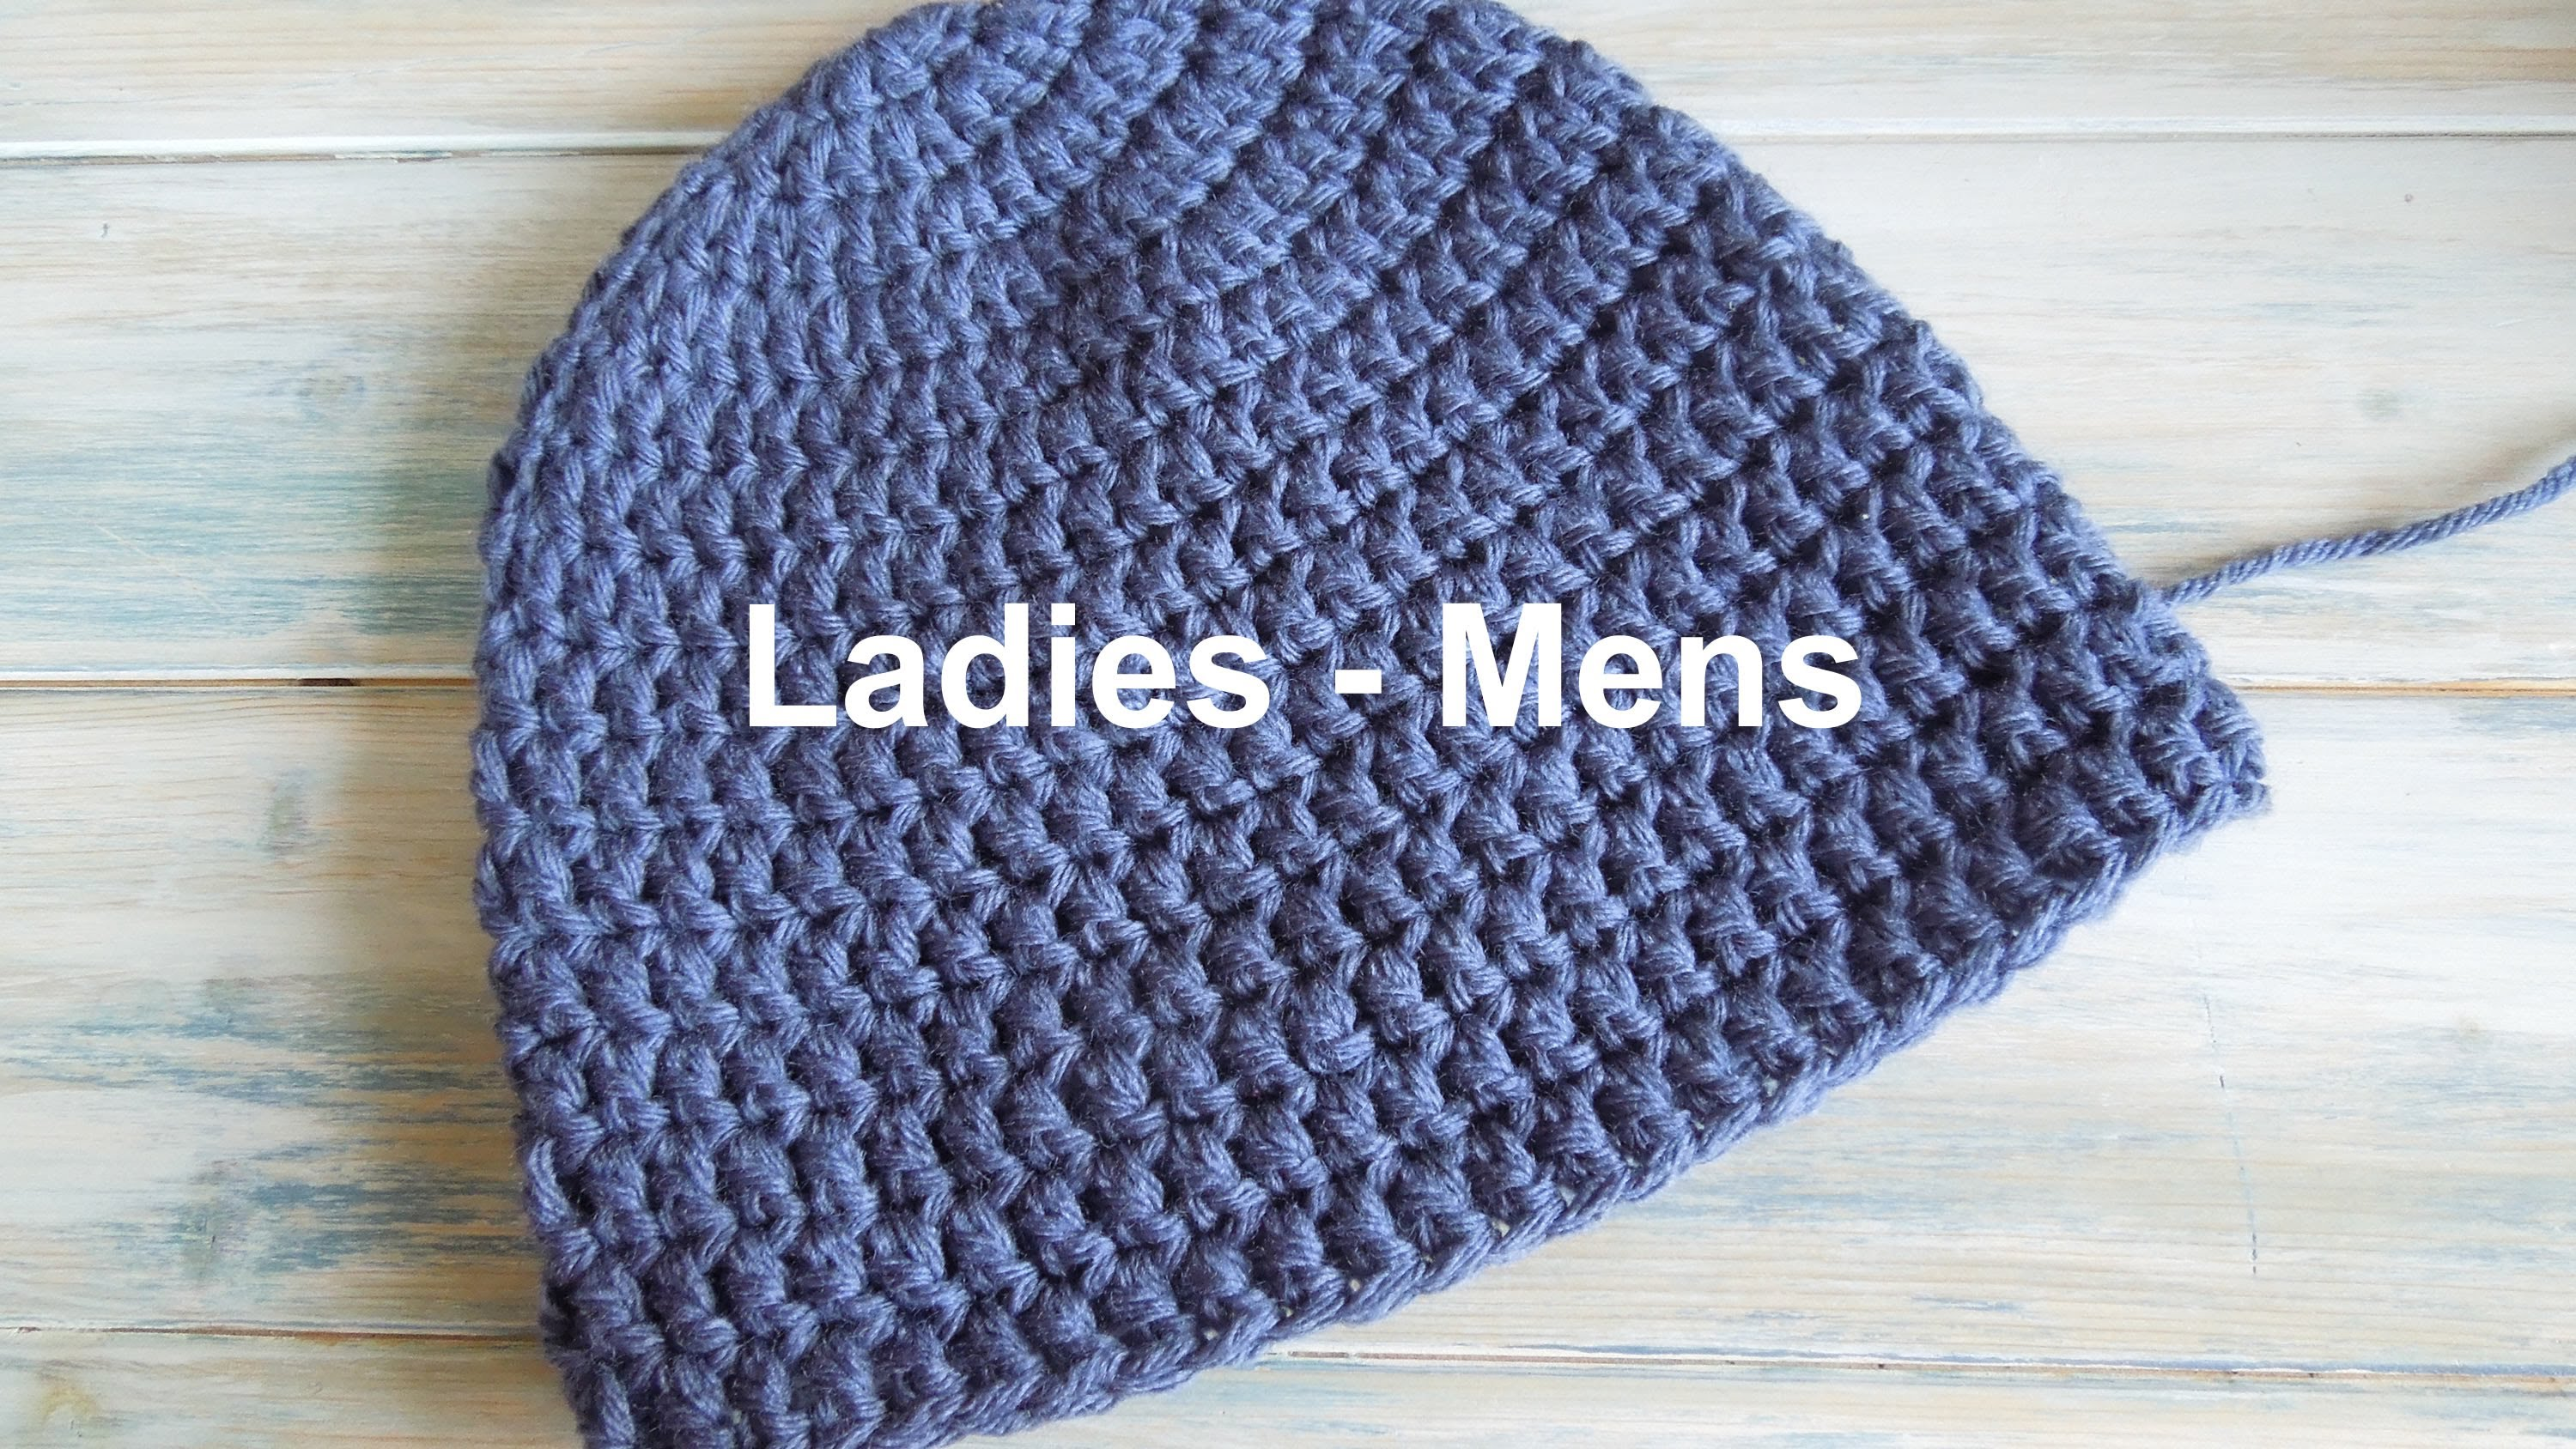 How To Crochet Easy (crochet) how to - crochet a simple beanie for ladies - mens size mkixxbl